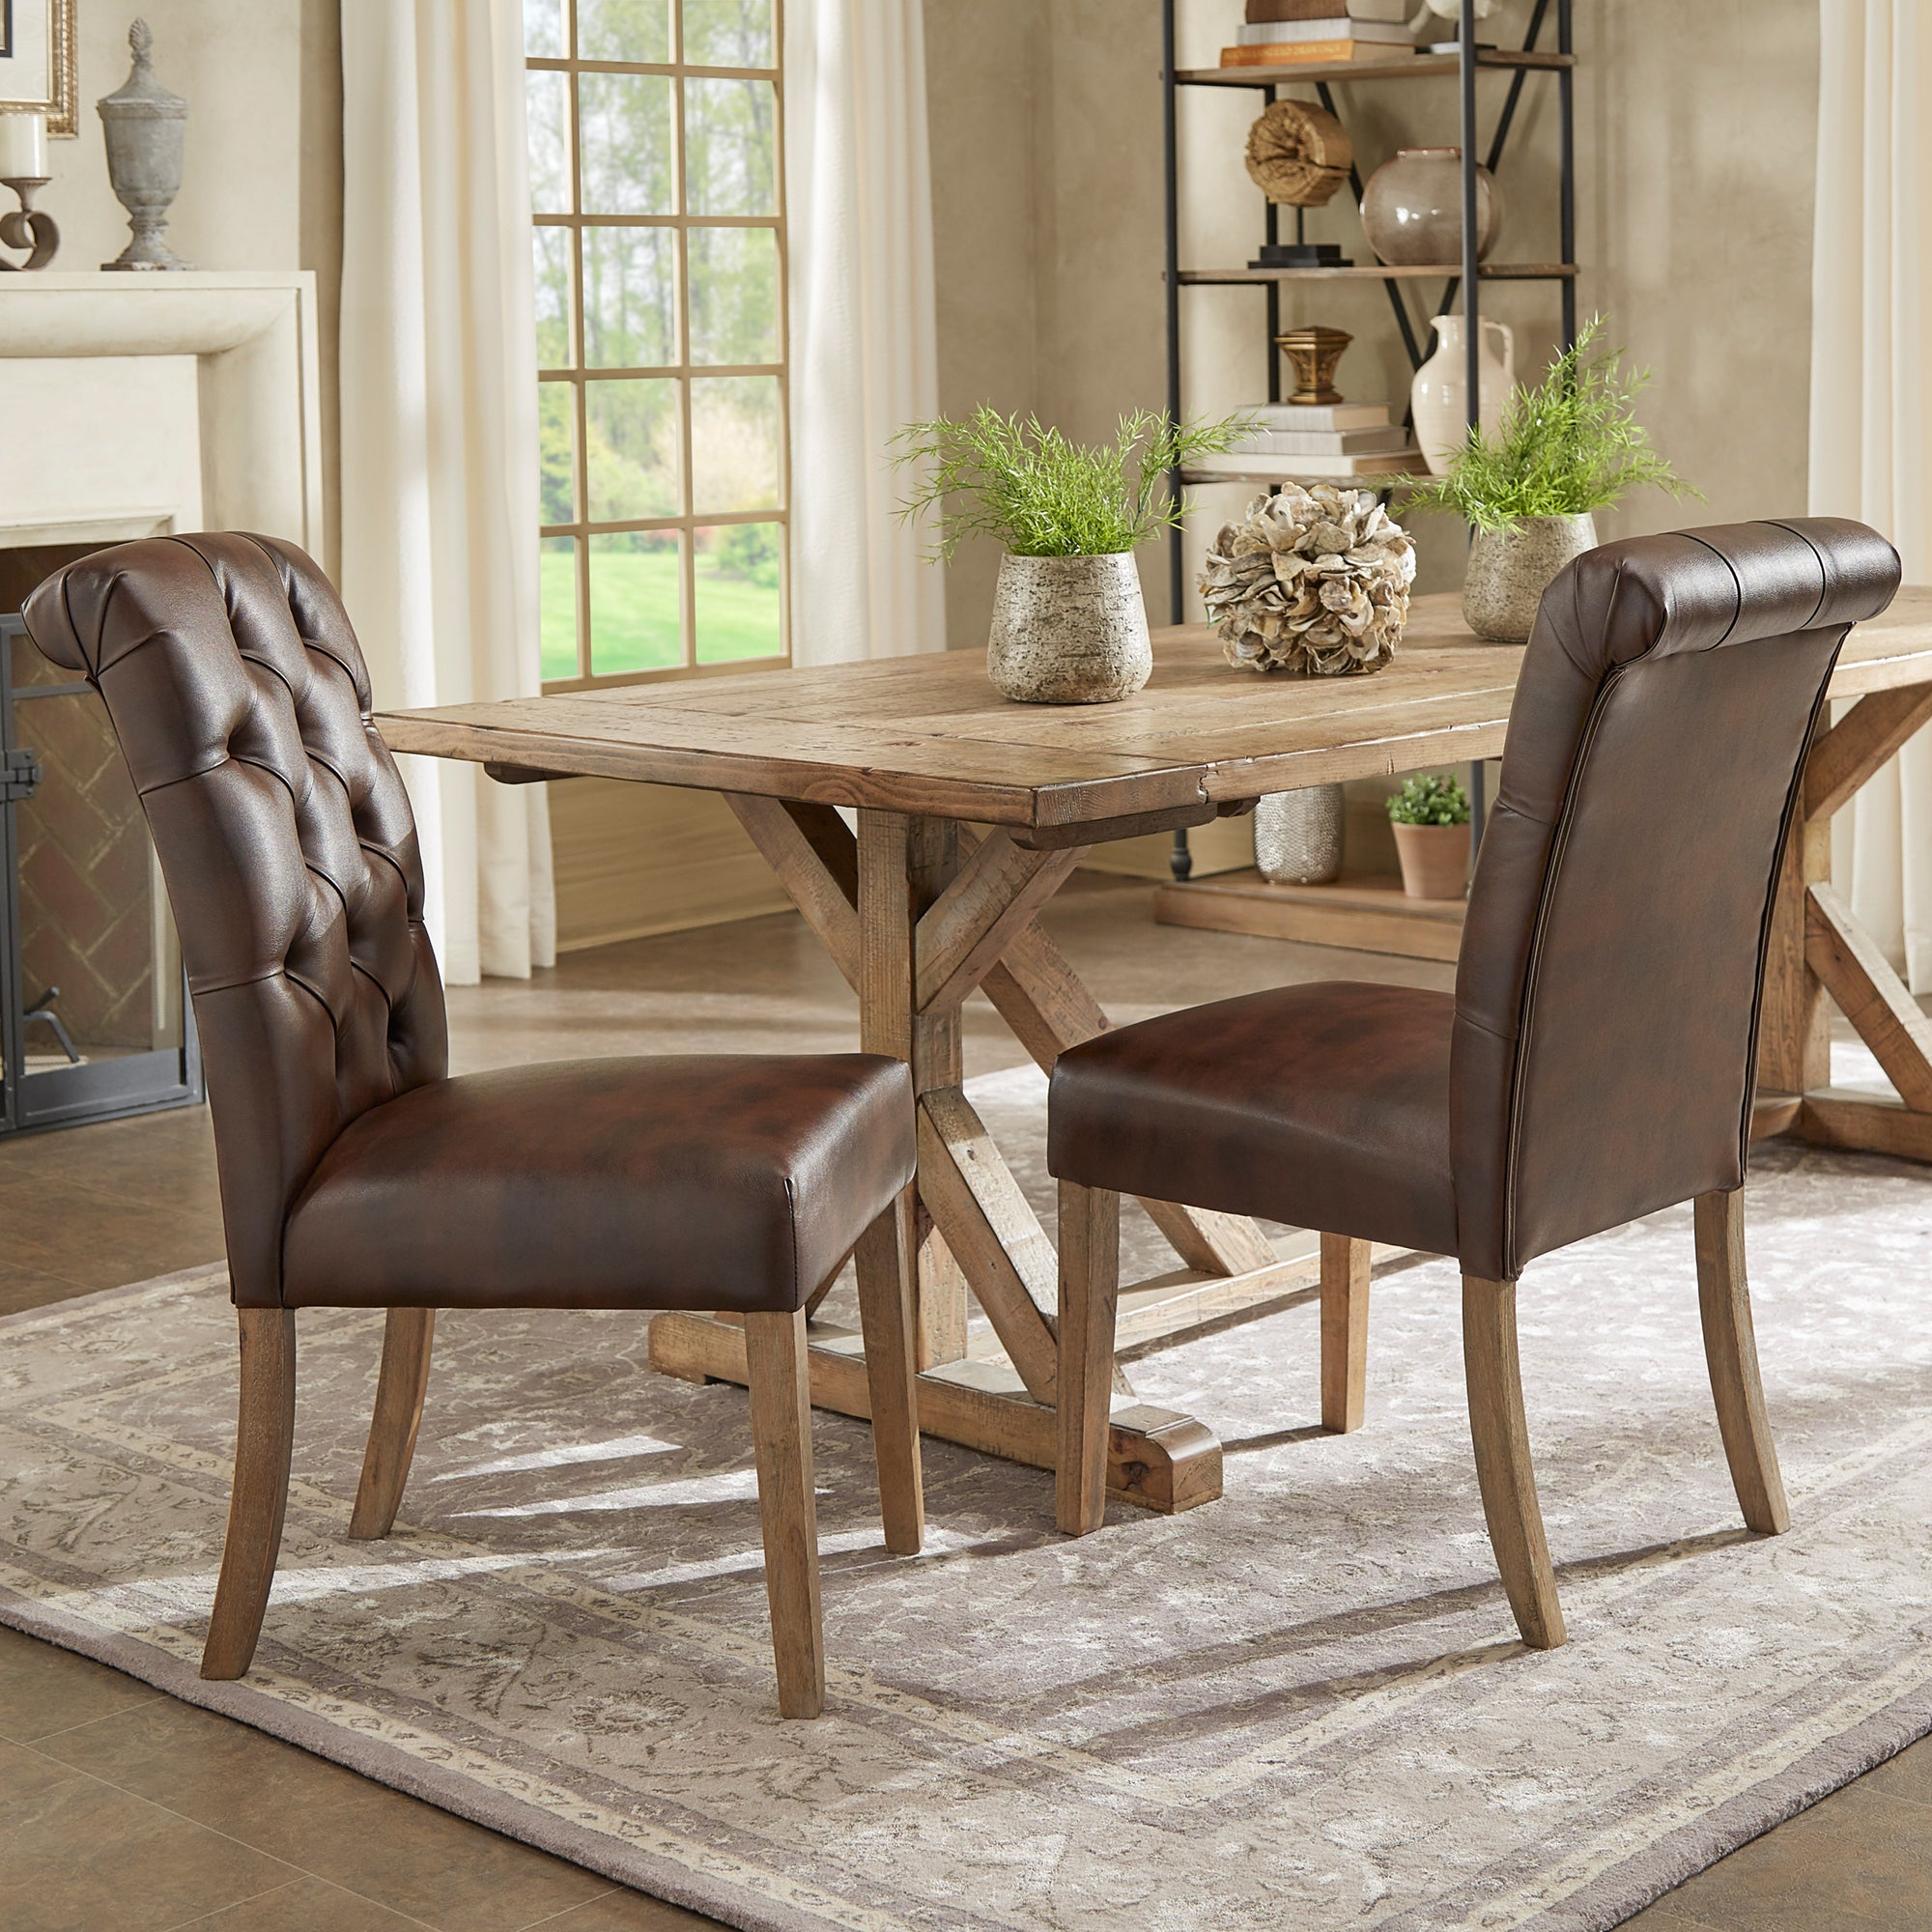 Benchwright Premium Tufted Rolled Back Parsons Chairs (Set Of 2)Inspire Q Artisan Regarding Latest Evellen 5 Piece Solid Wood Dining Sets (Set Of 5) (View 9 of 20)